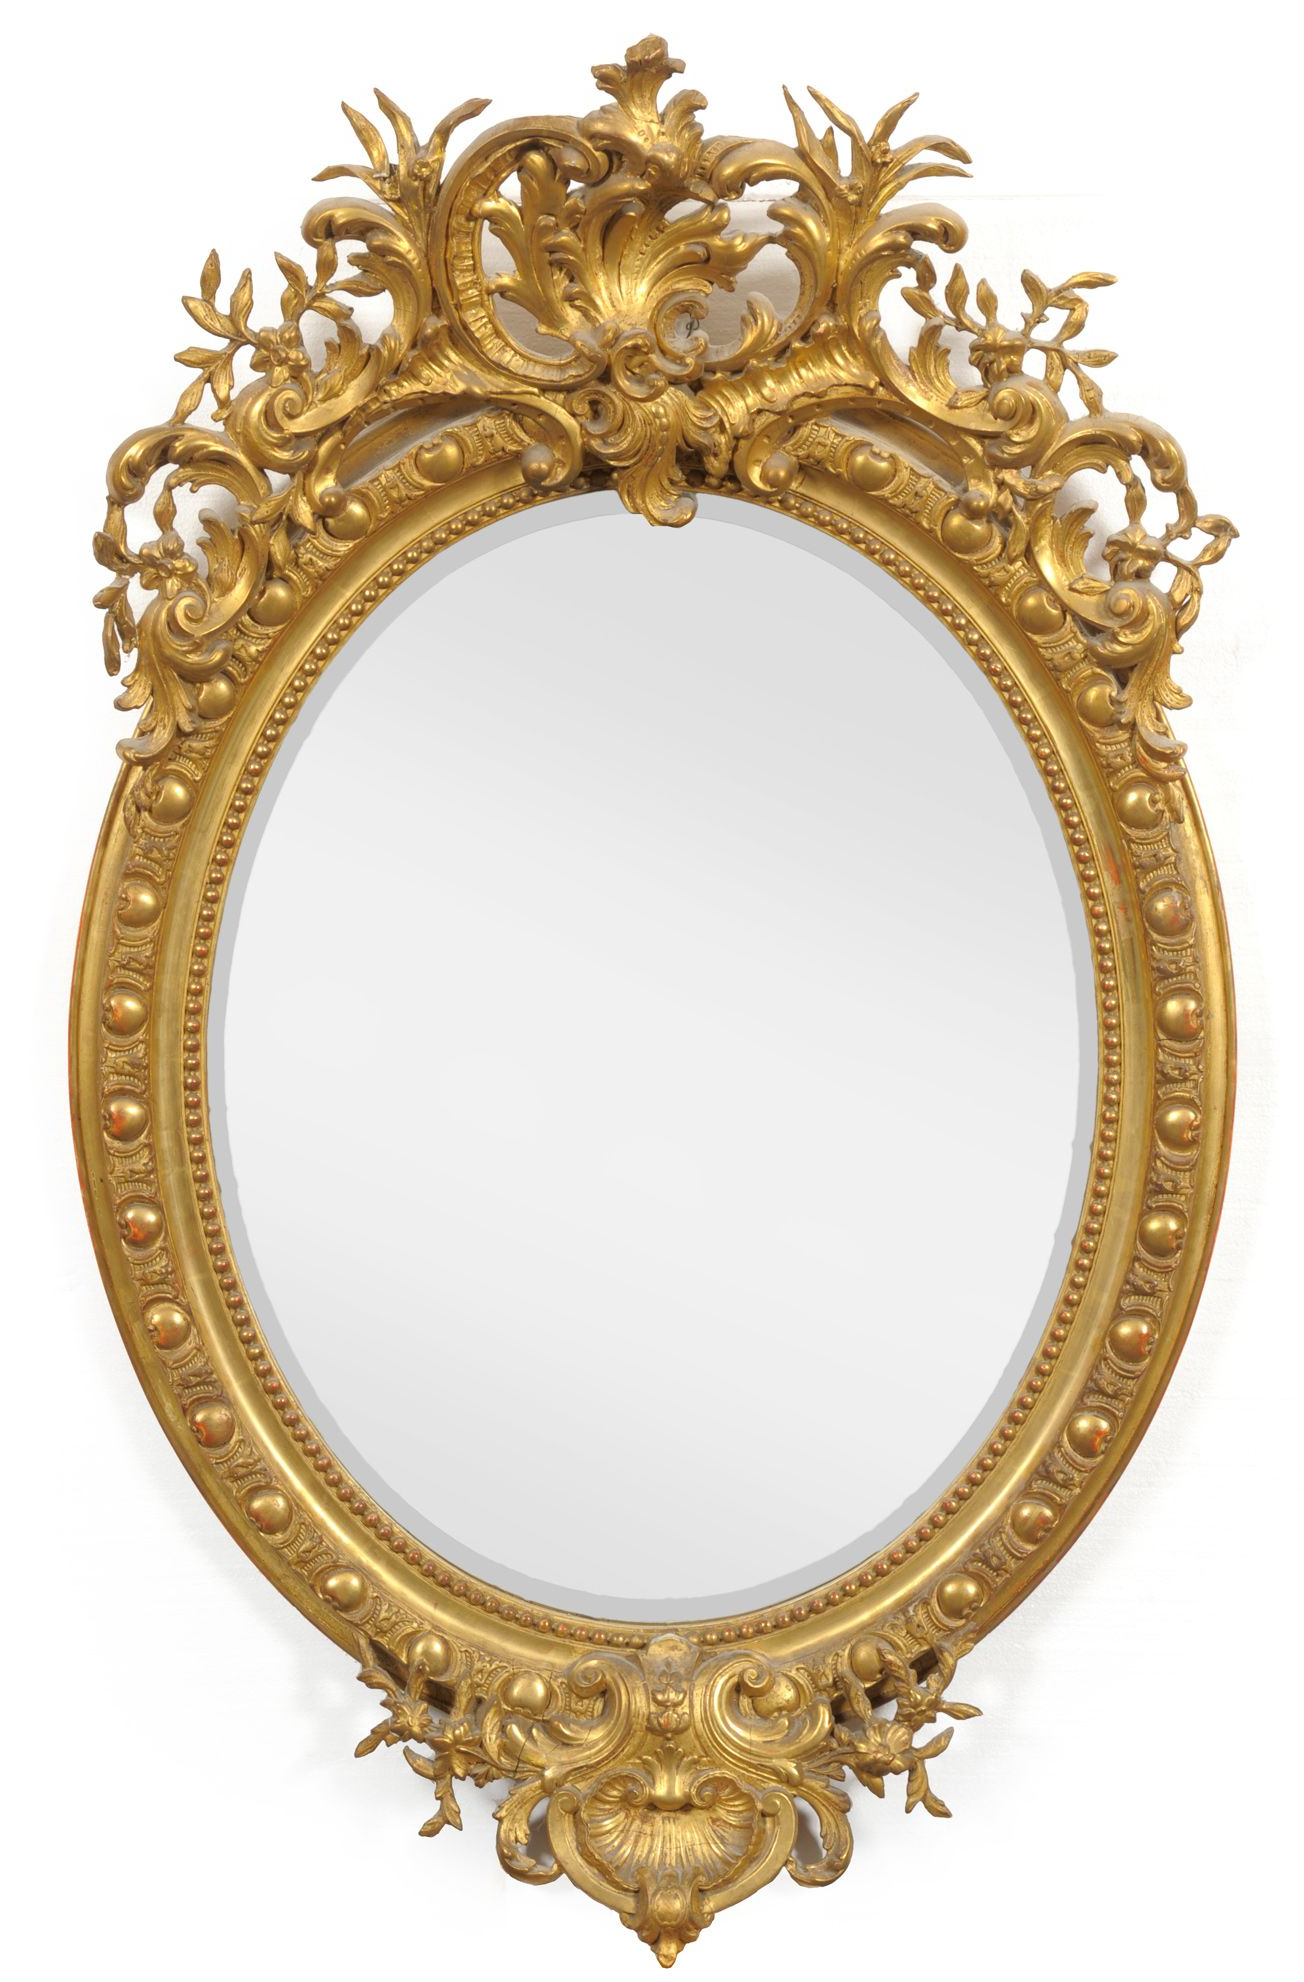 Tennants Auctioneers: An Early Victorian Gilt And Gesso Oval Wall Inside Current Antique Oval Wall Mirrors (View 17 of 20)